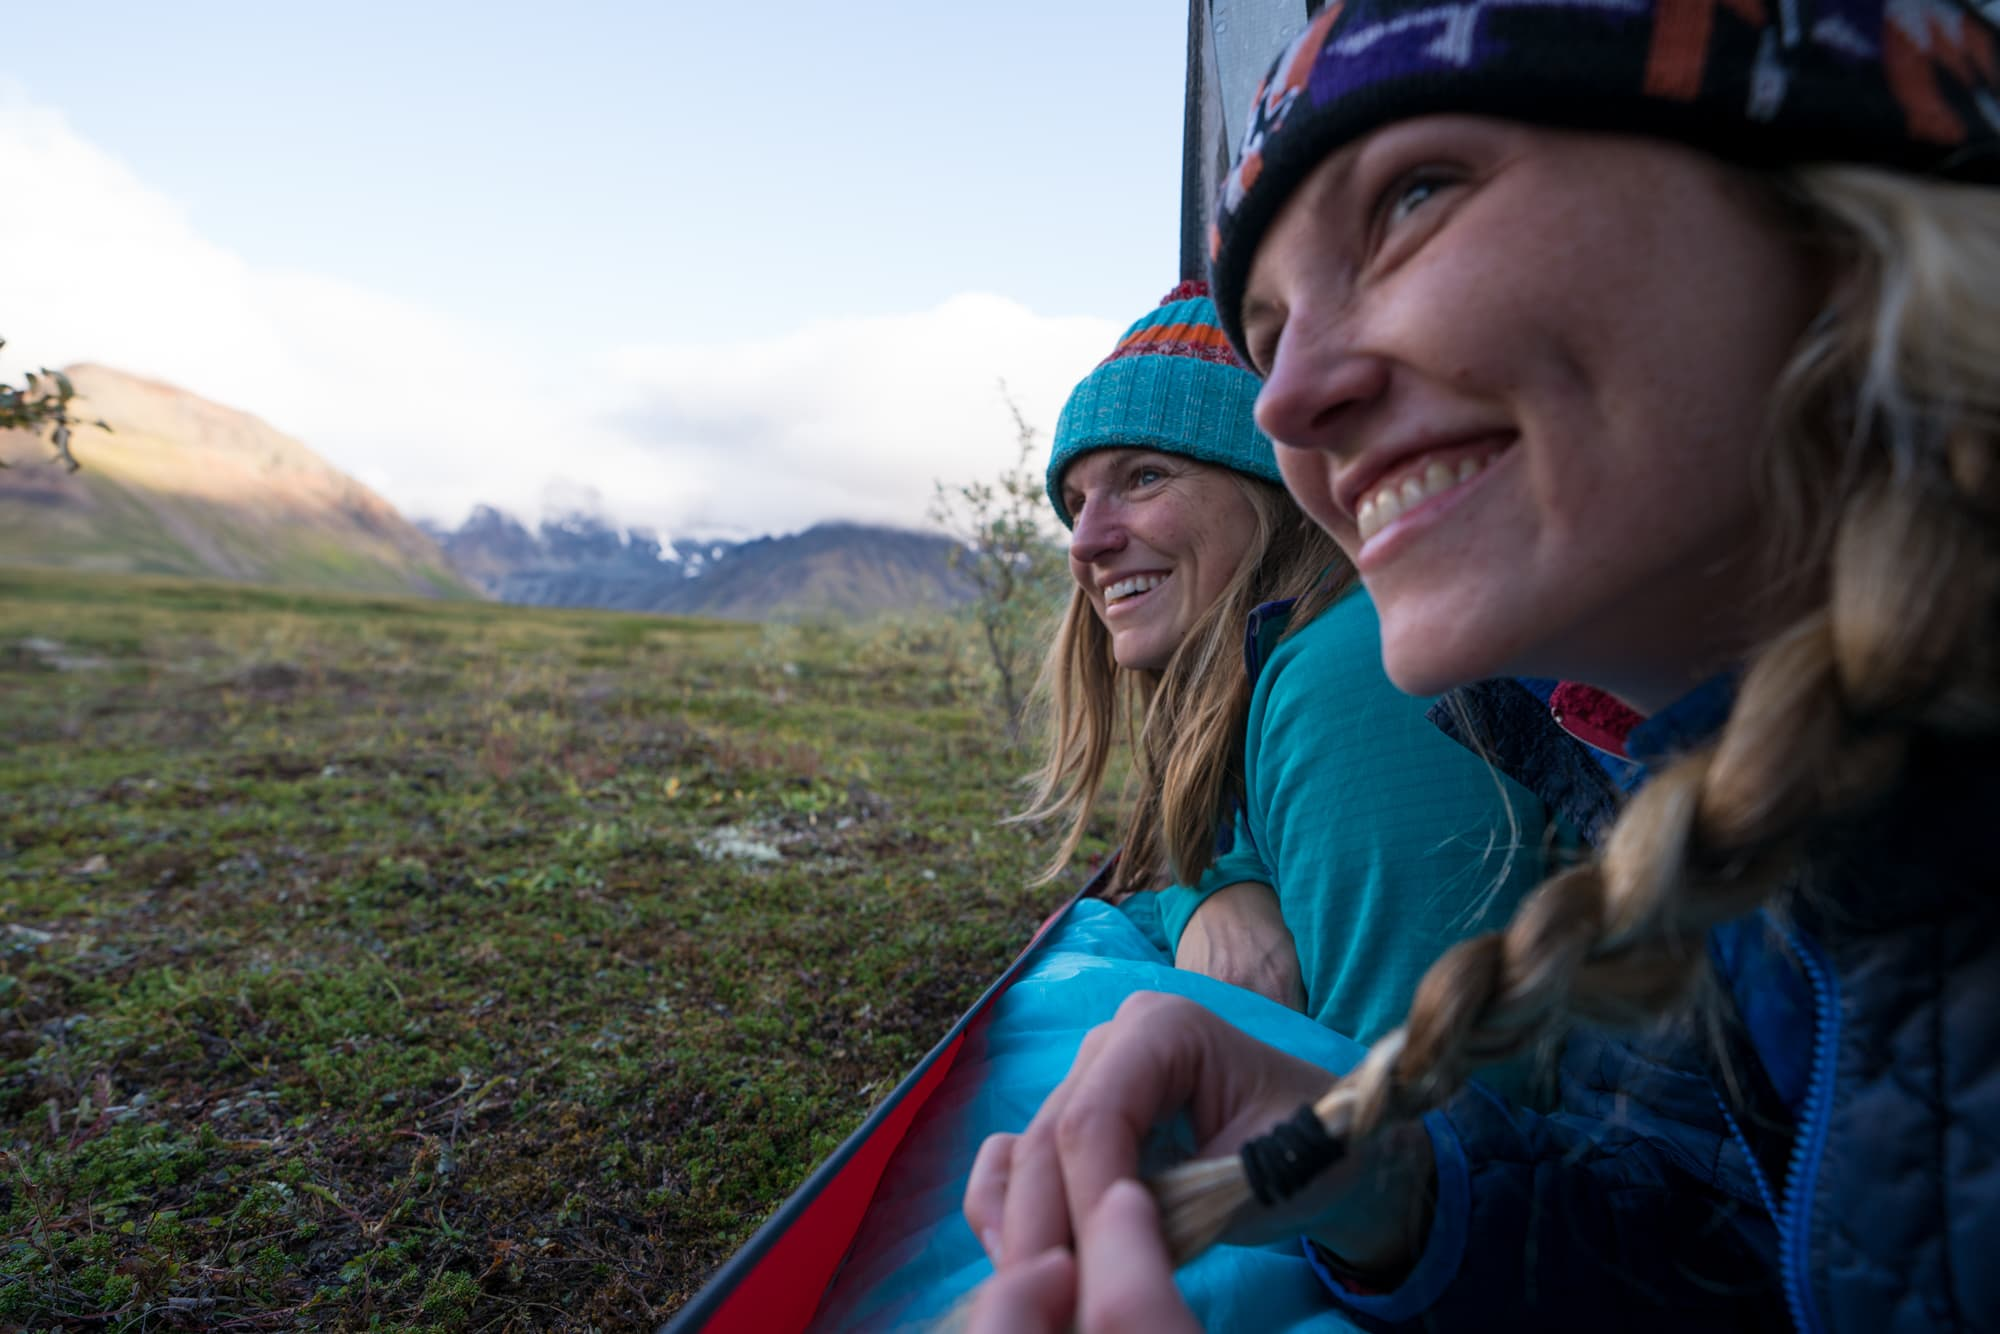 20 tried and true tips for staying warm while cold weather camping. Be prepared & comfortable for cold weather camping regardless of the temperature.